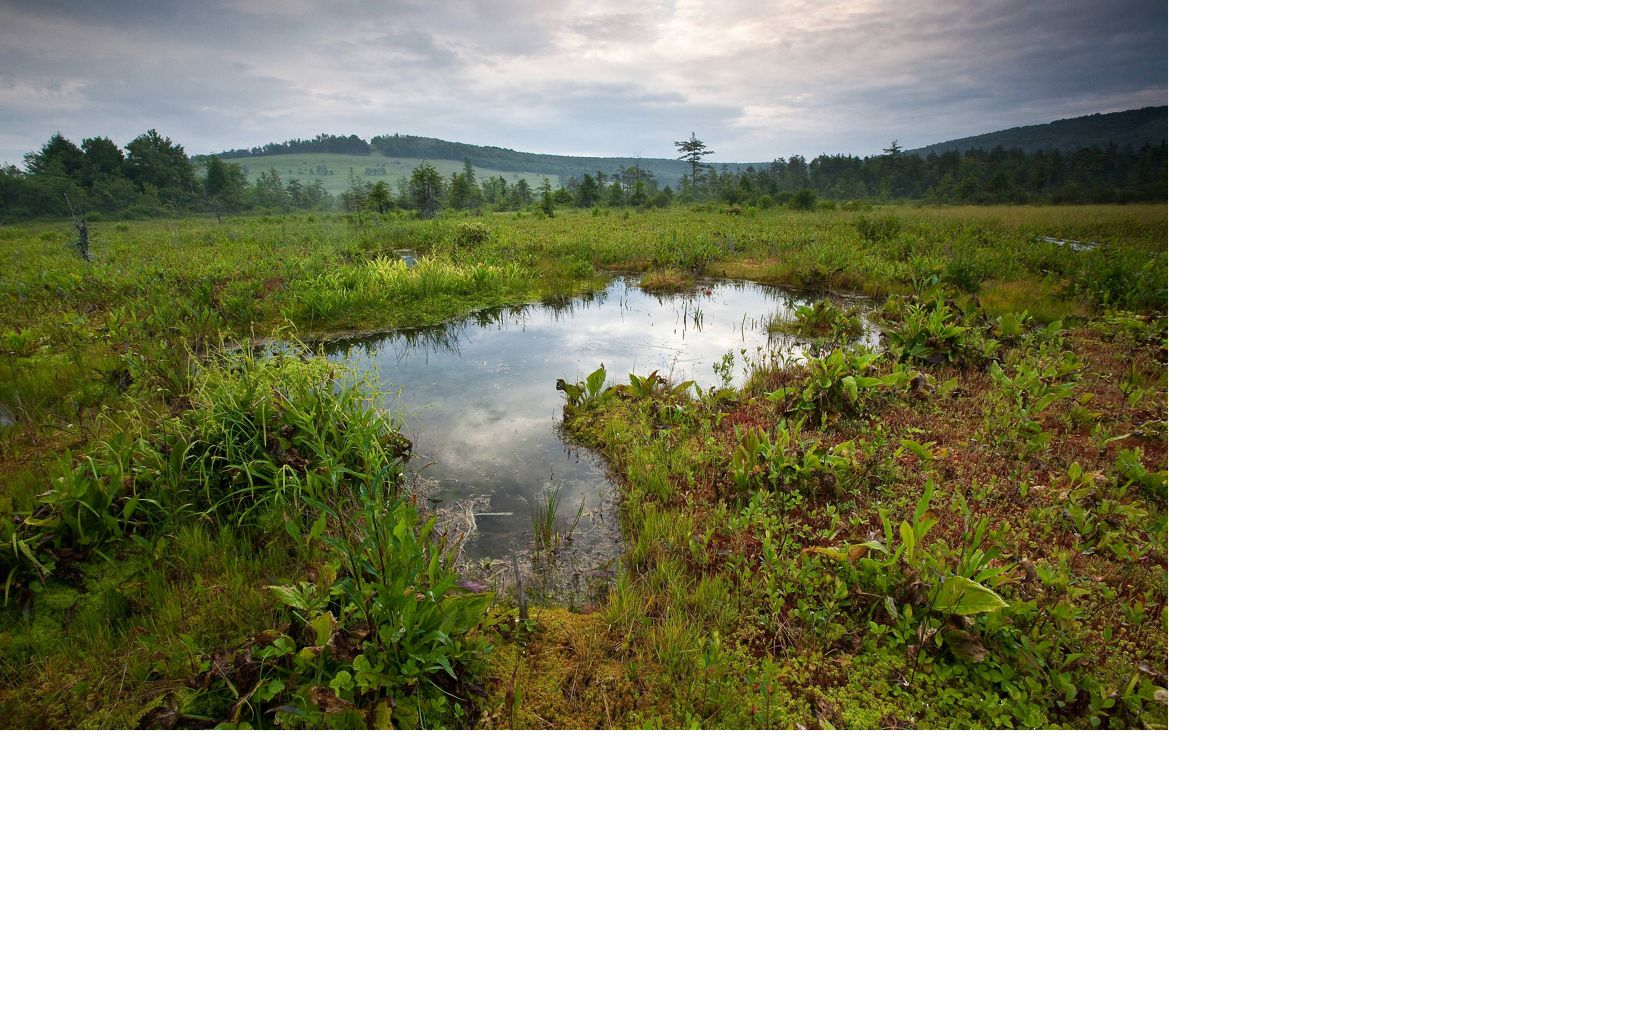 The permanent cool, wet setting of the preserve has created a peat bog – consisting of wet spongy ground and decomposing vegetation with poor drainage.